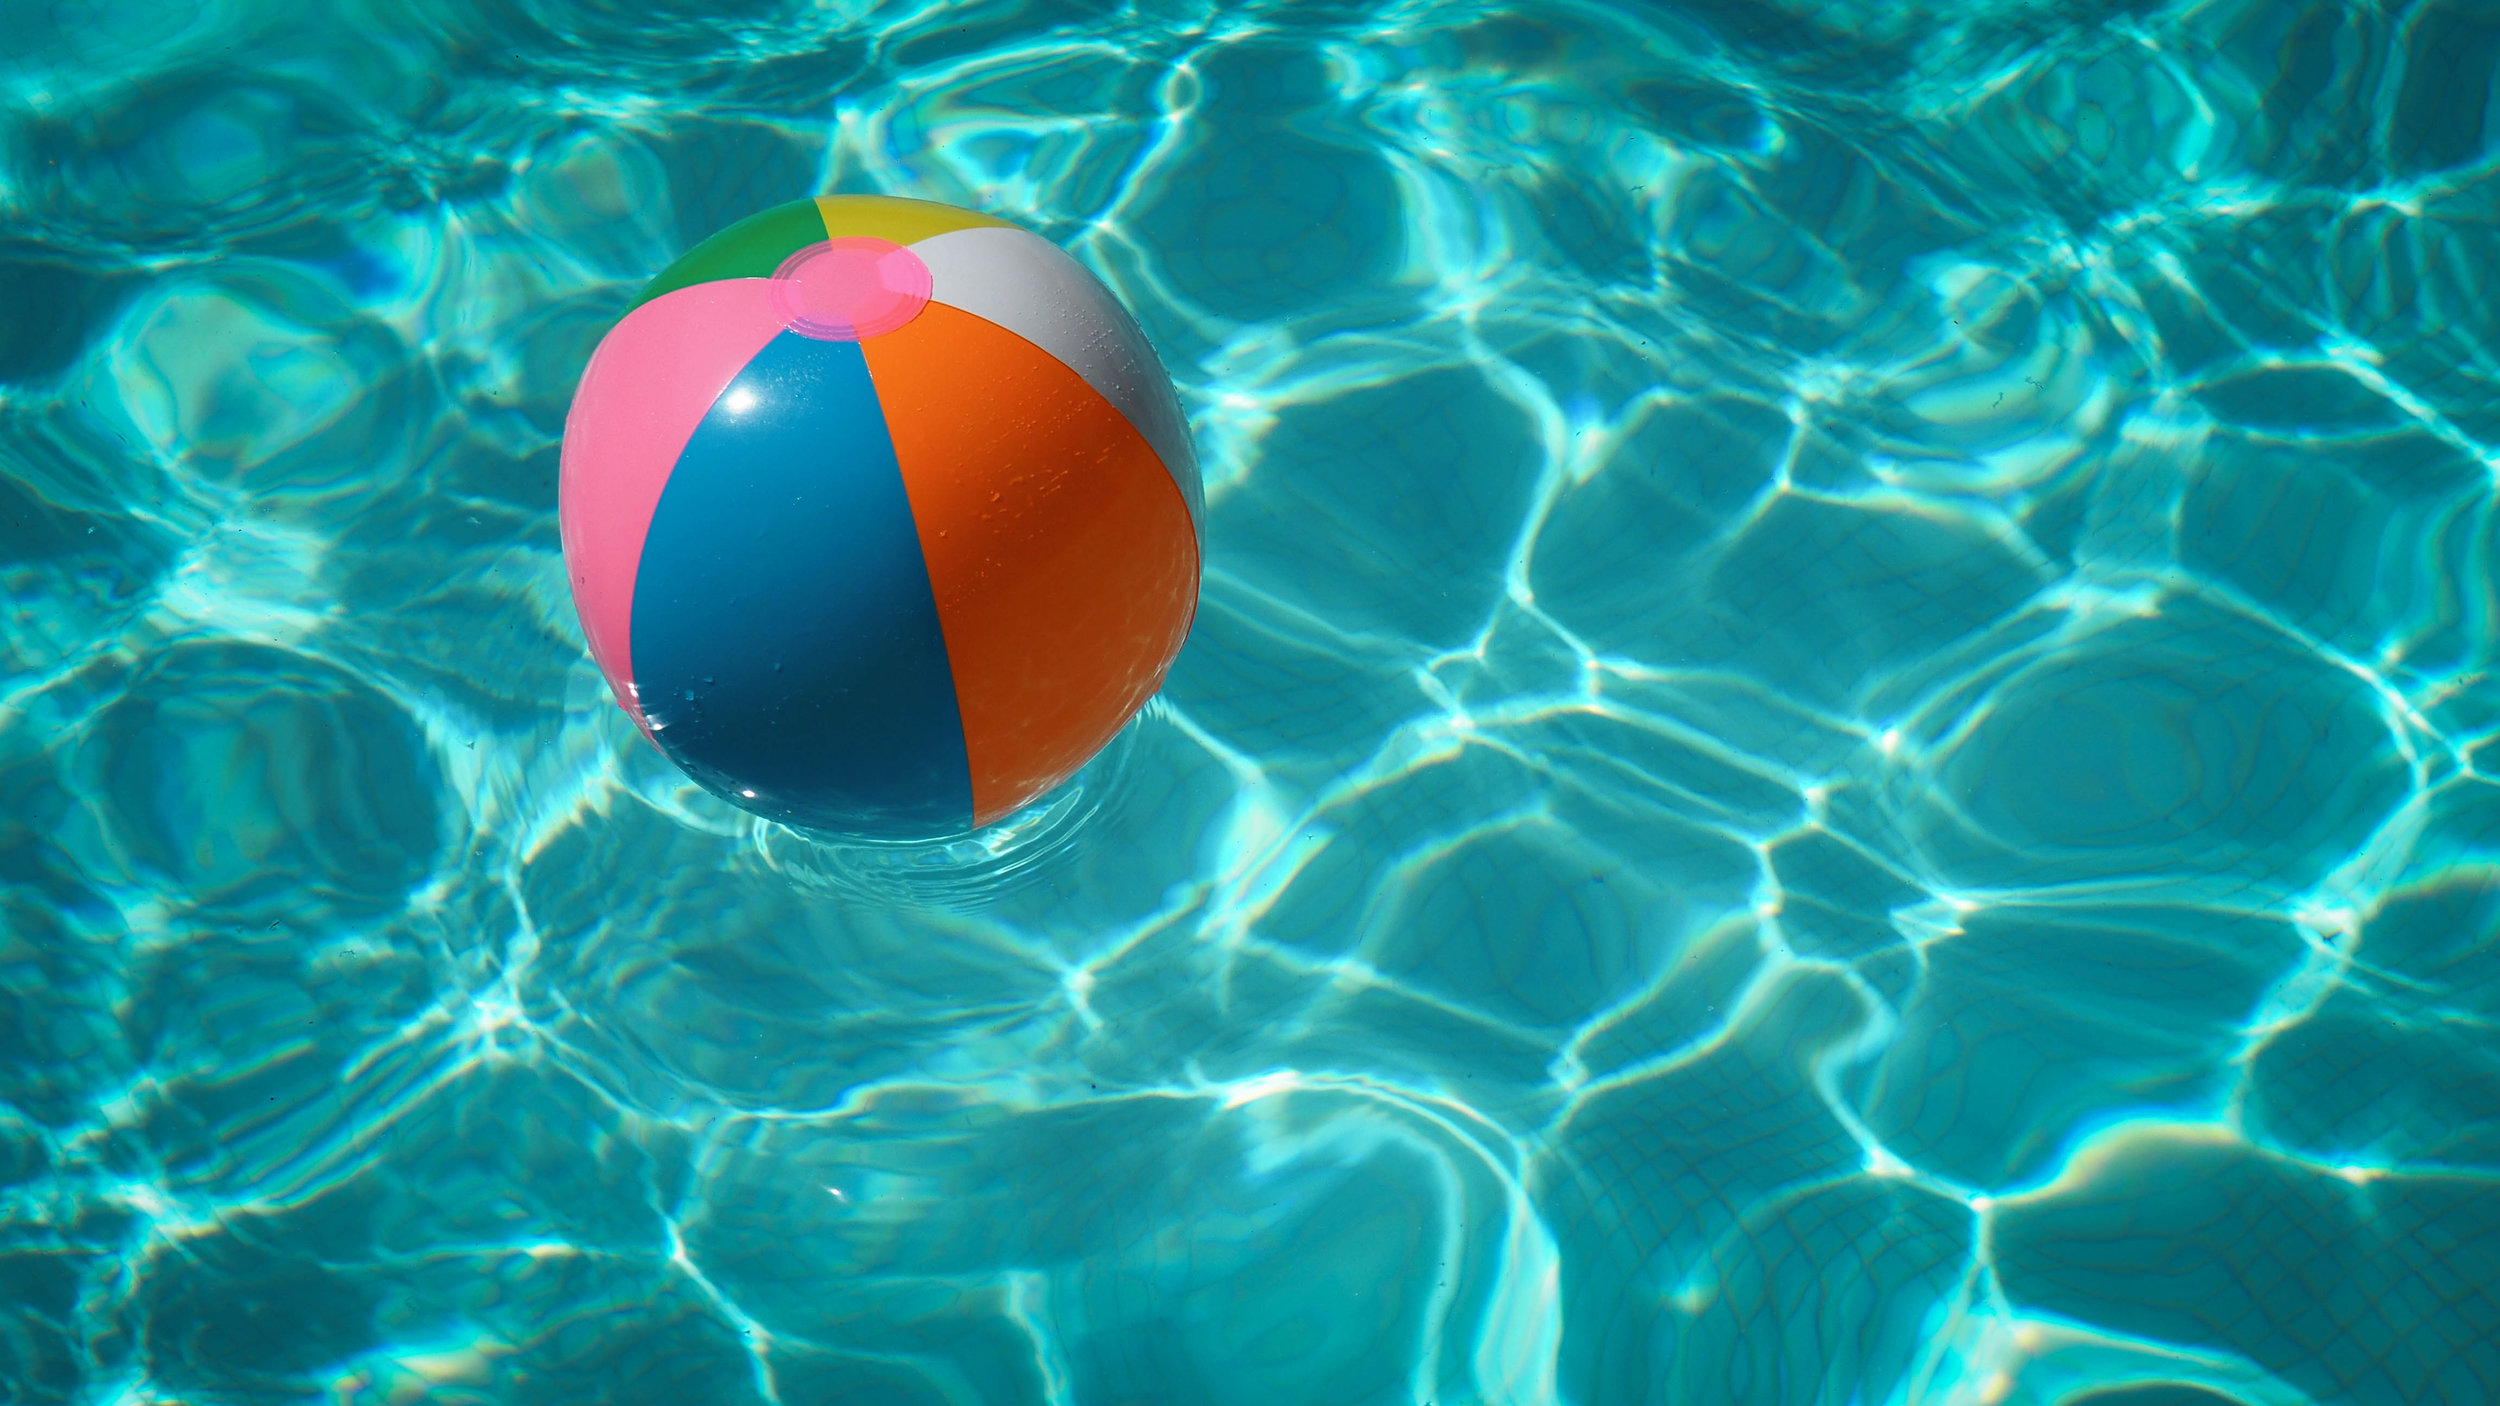 Picture of beach ball in pool